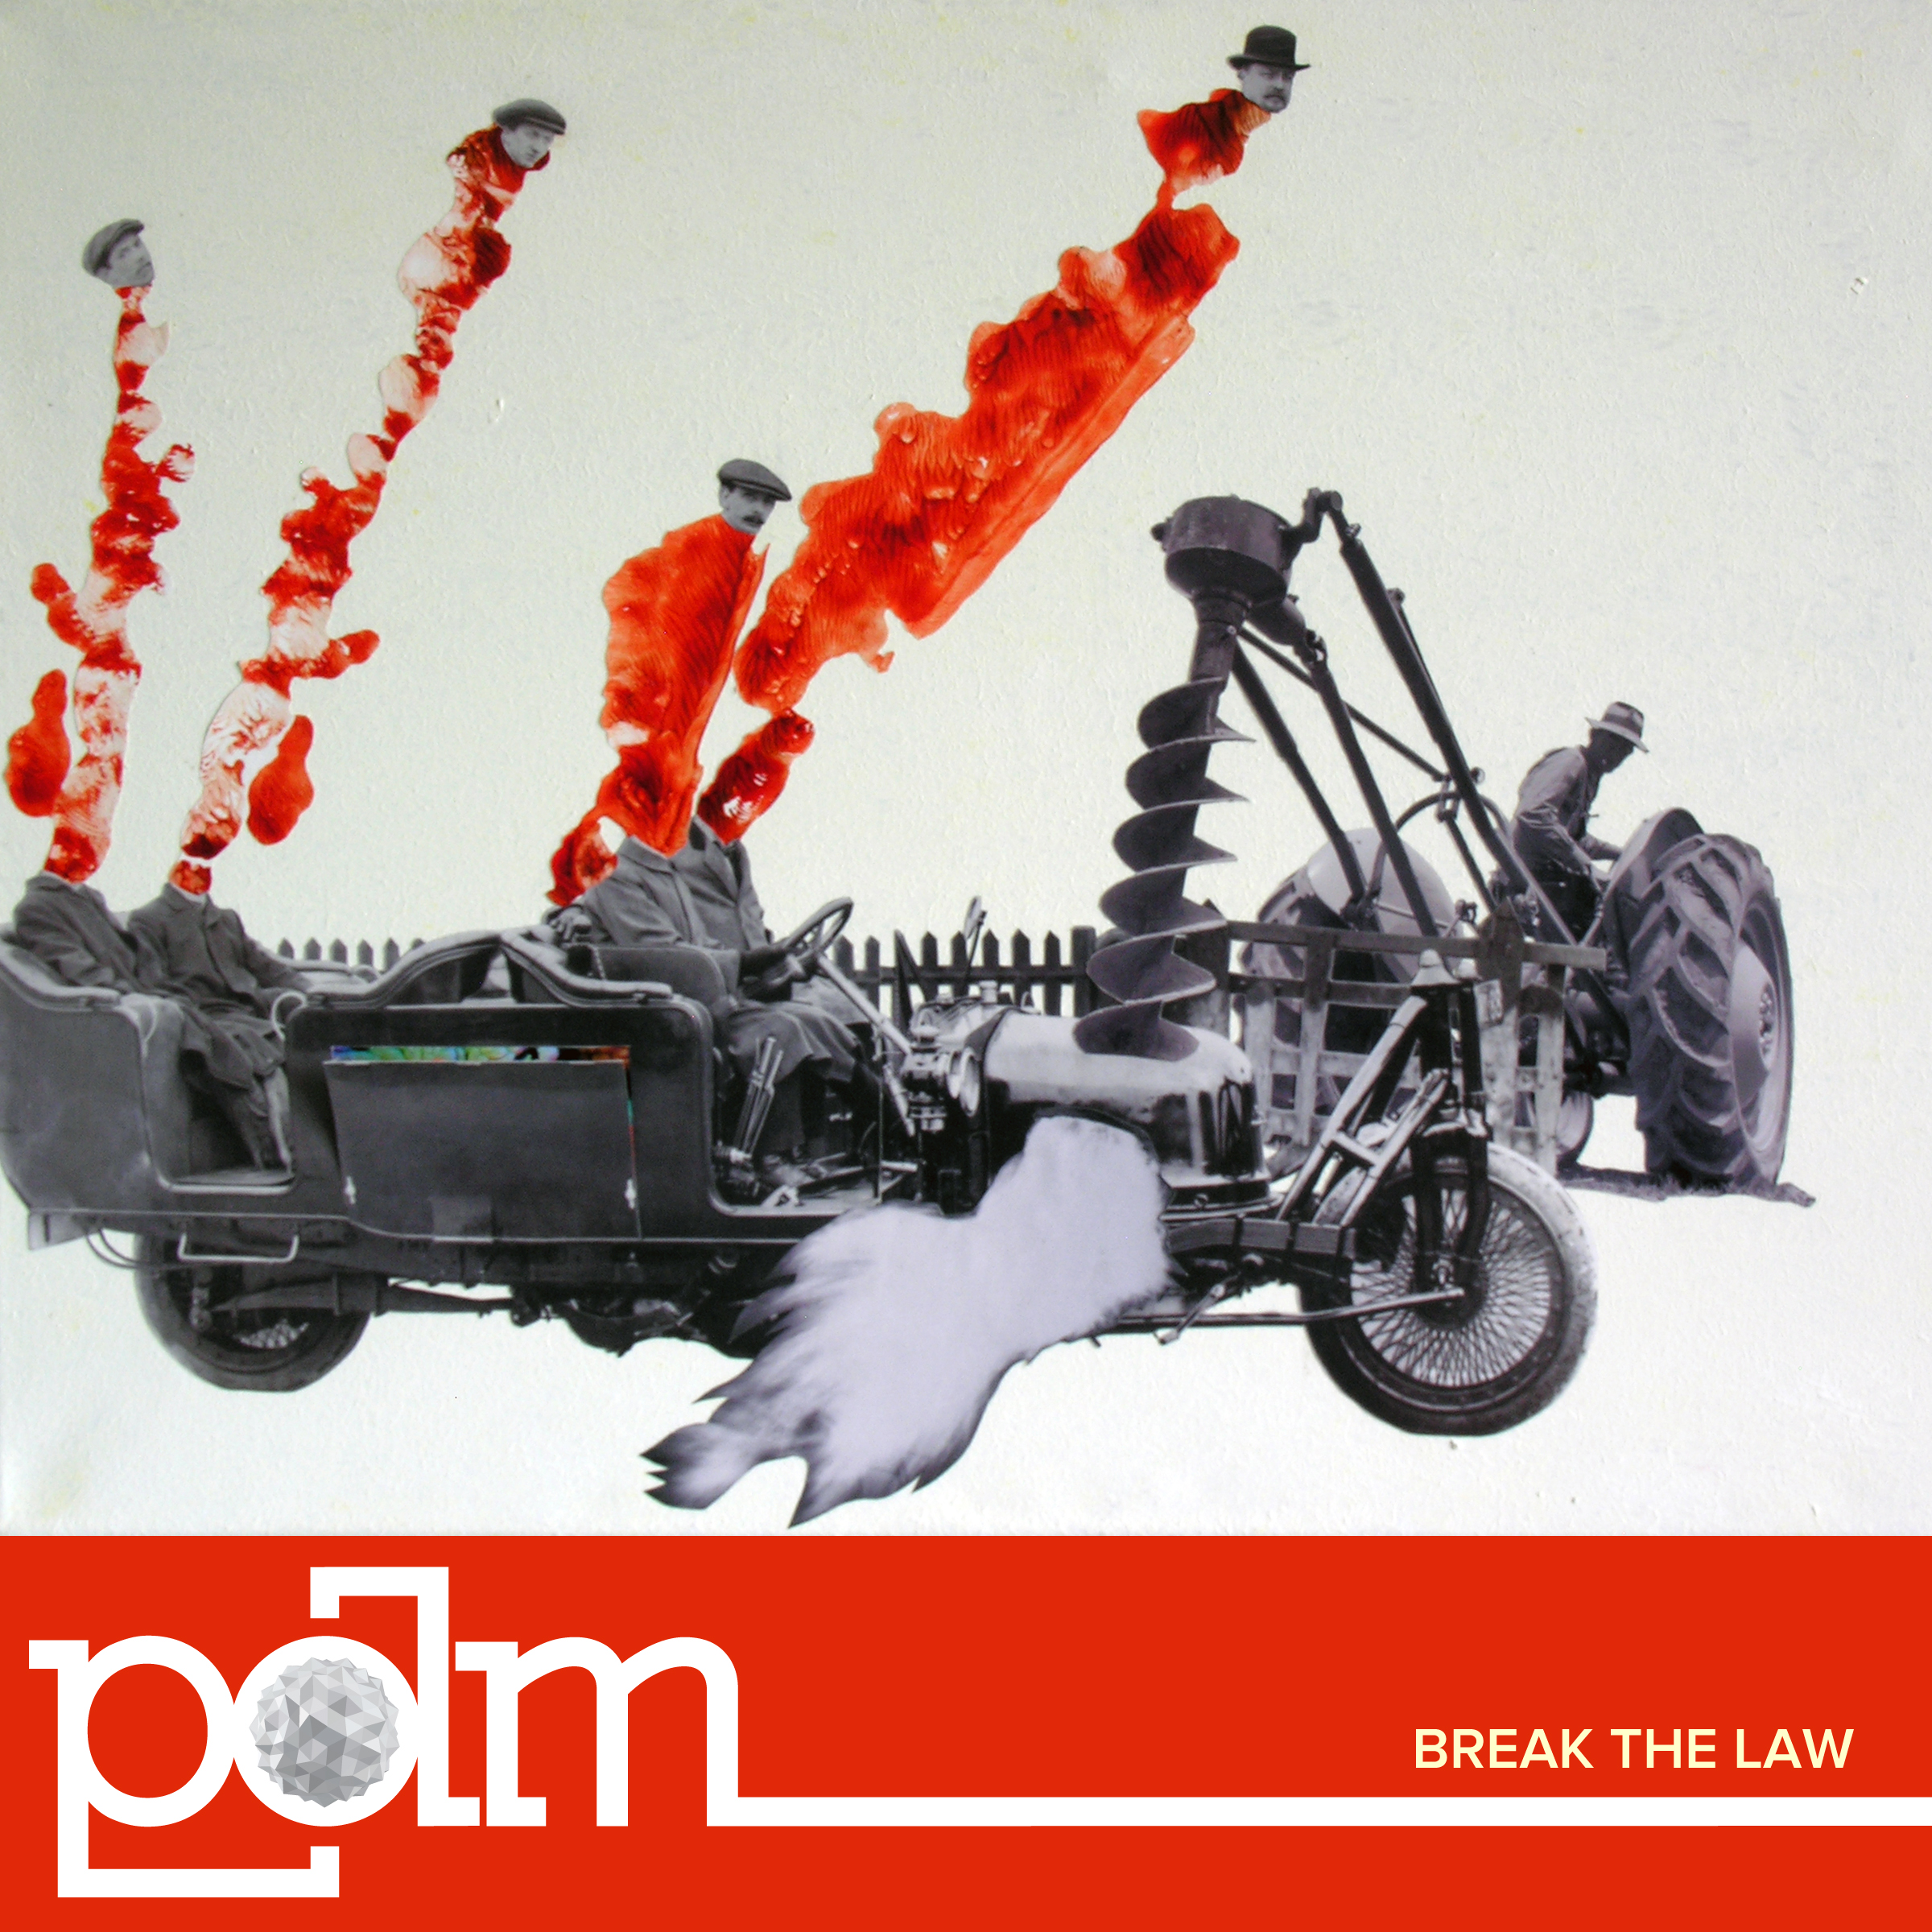 BREAKTHELAW